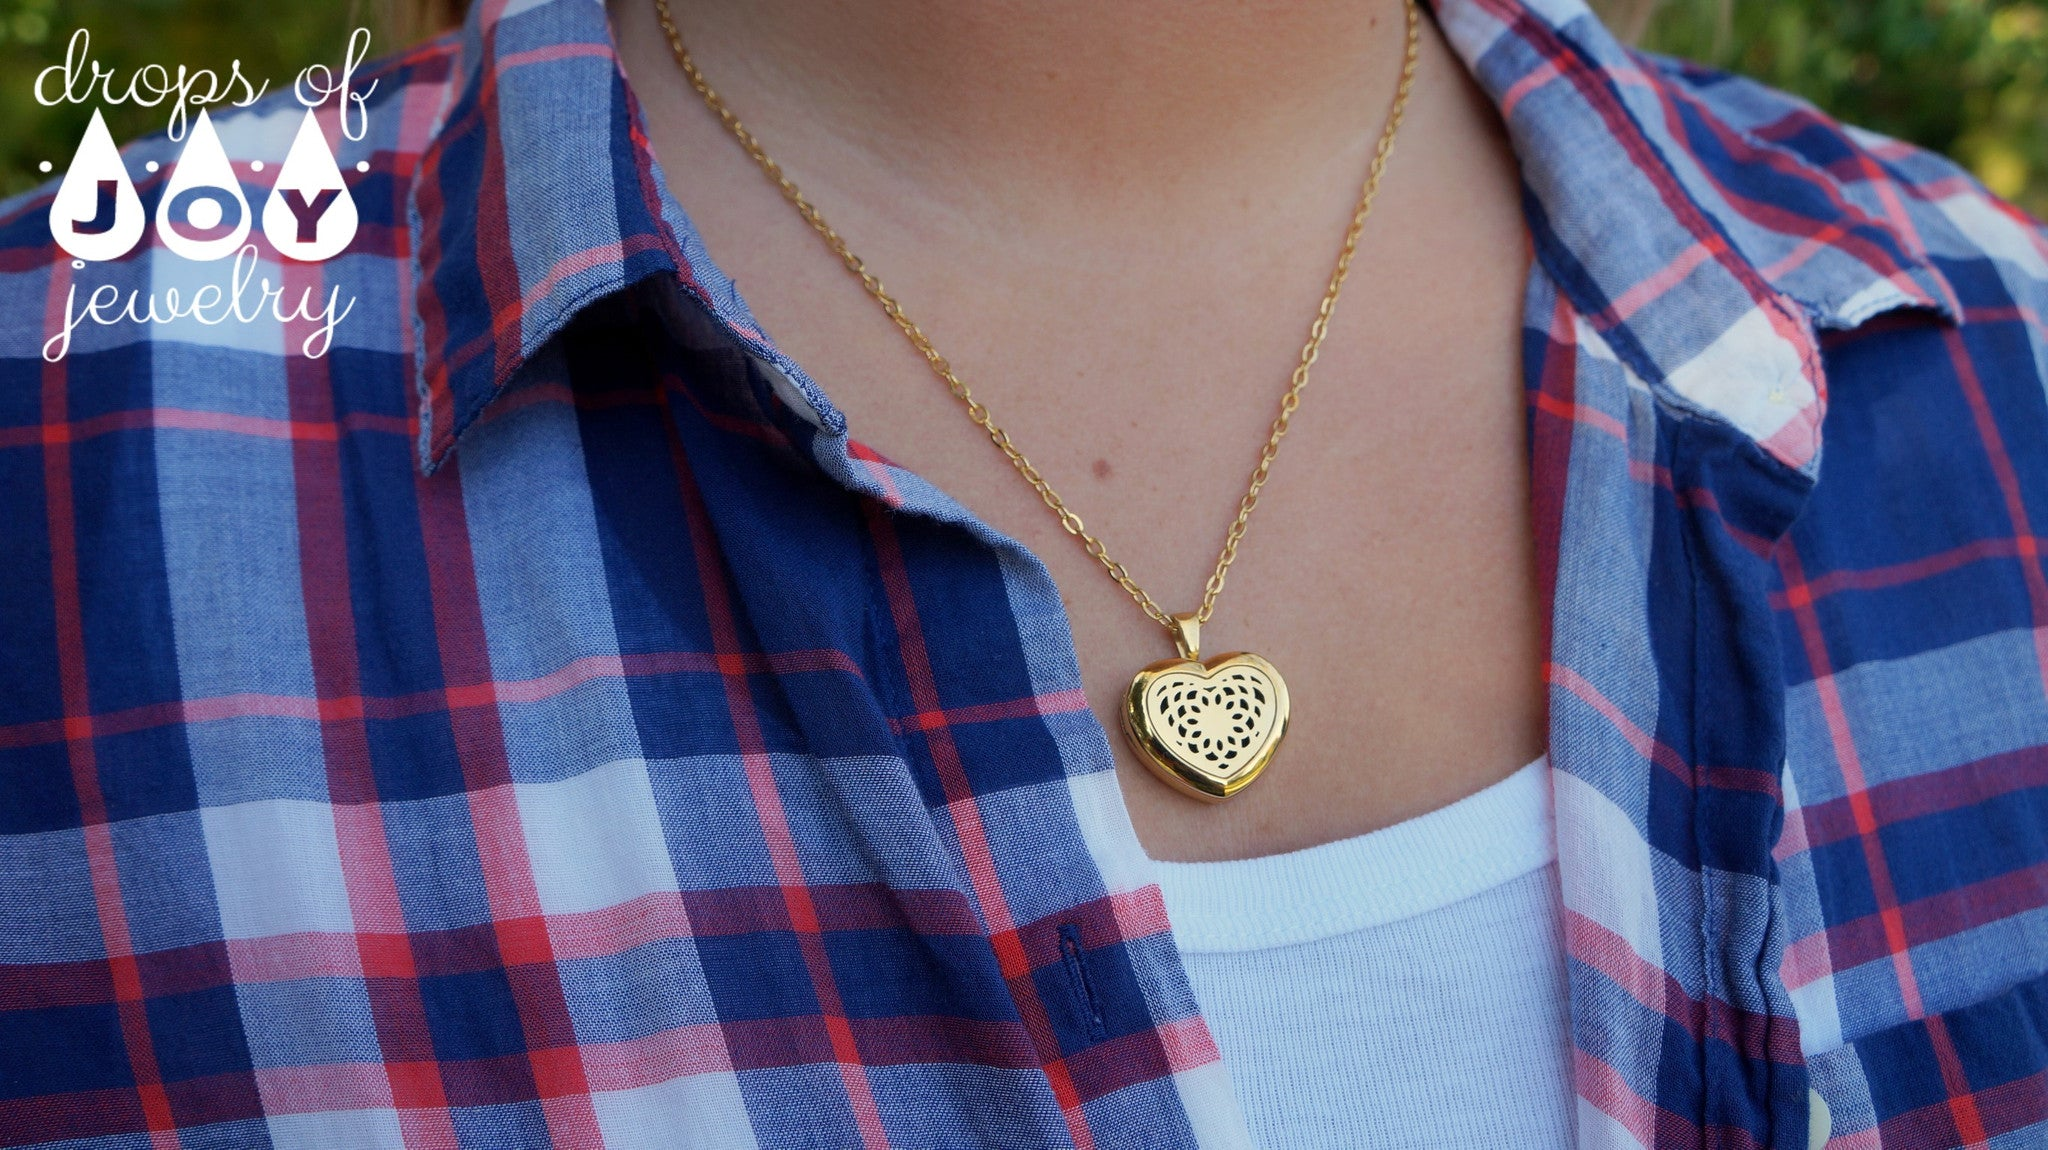 Diffuser Necklace - Stainless Steel Gold Heart - Drops of Joy Jewelry - 2